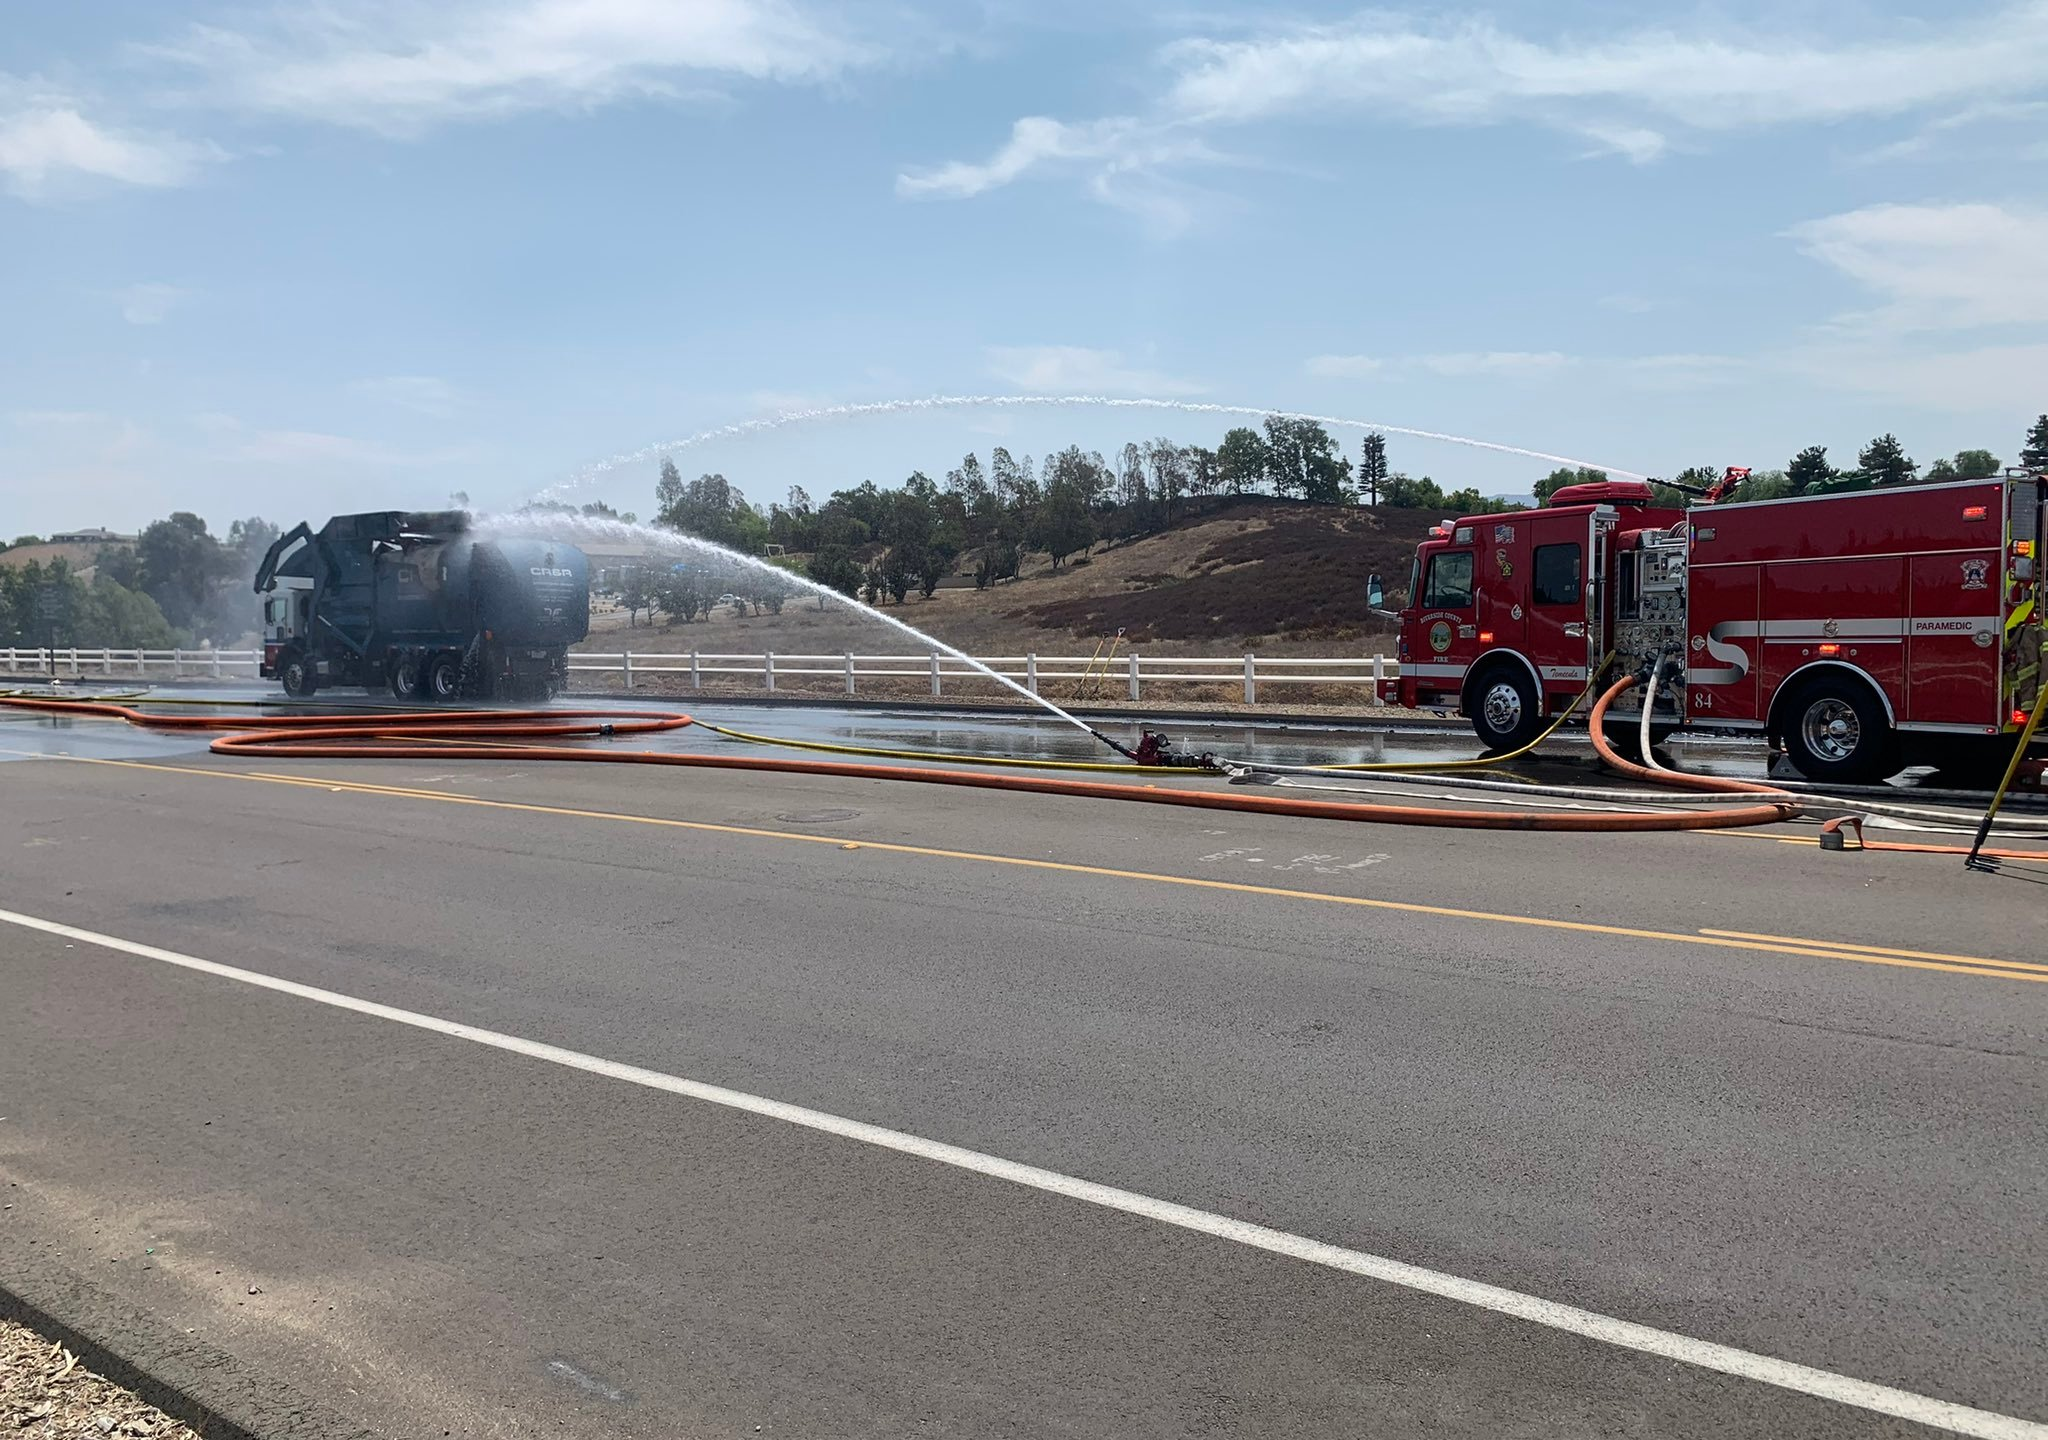 Thirteen people were hurt when a propane tank exploded on Aug. 16, 2021. (CAL FIRE and Riverside County Fire Department)